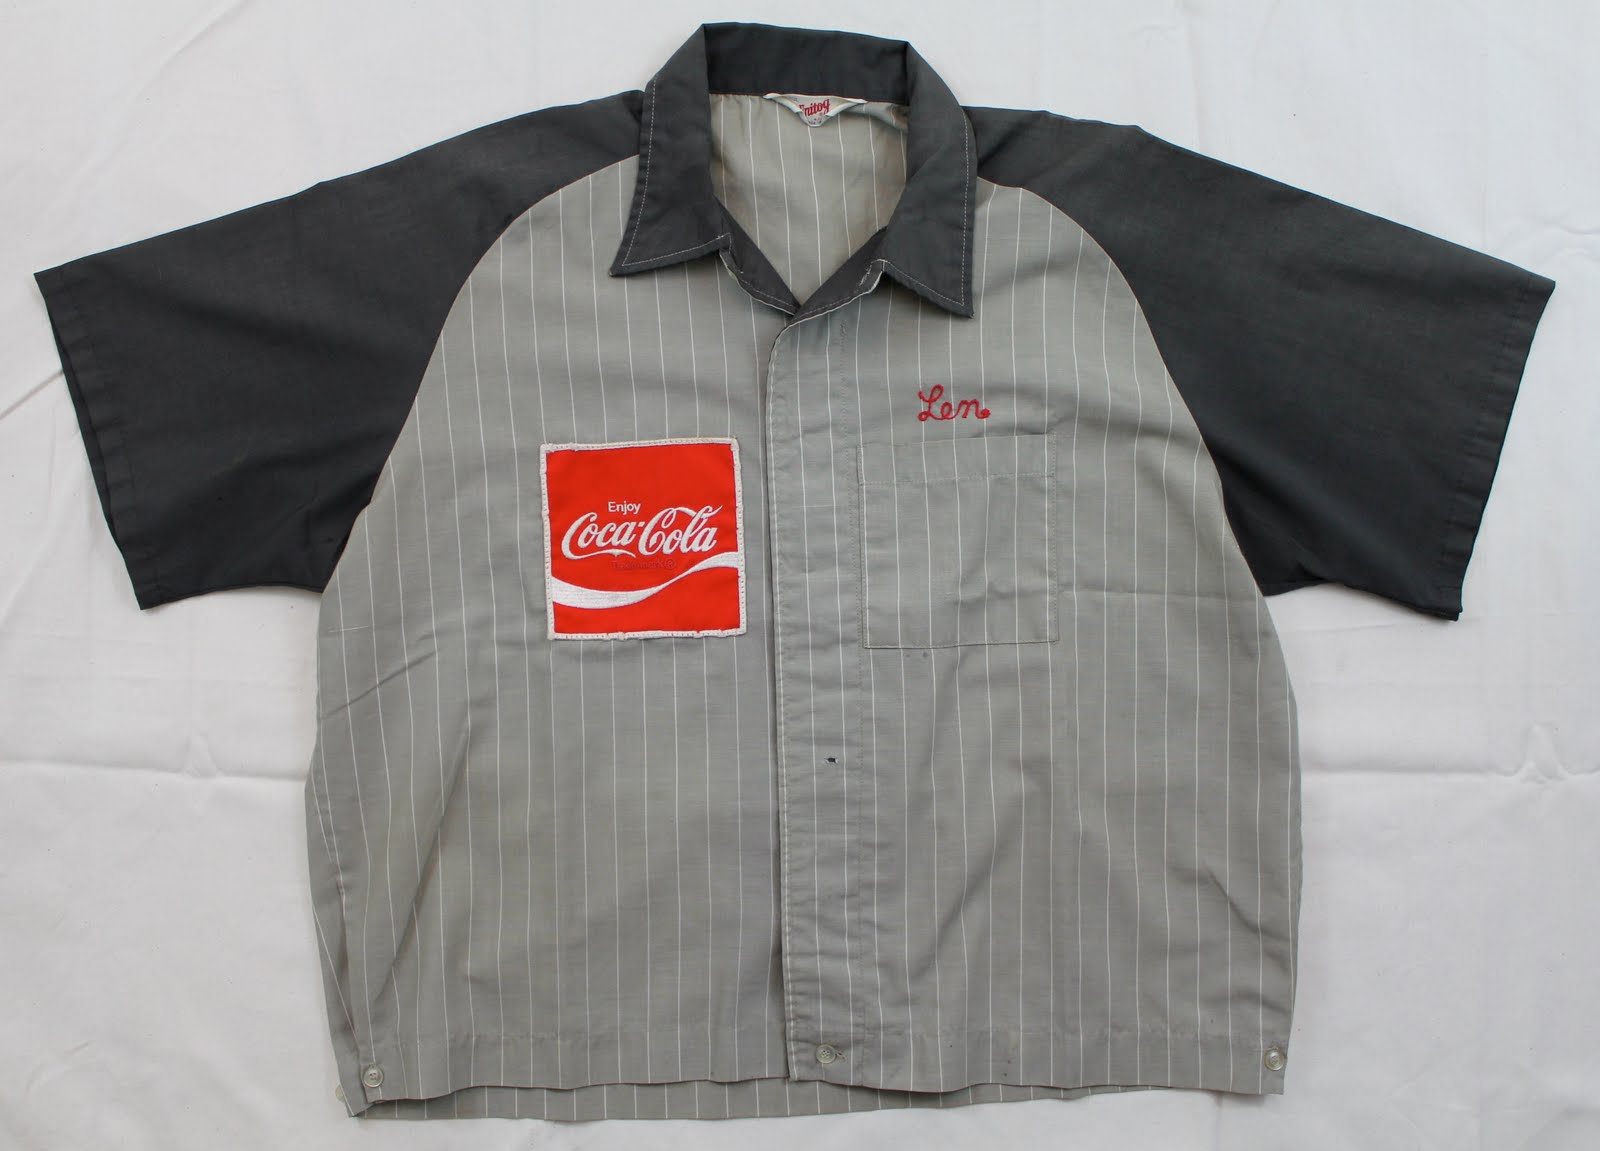 Enjoy COCA-COLA Cloth Logo Embroidered Shirt Patch 1970/'s Style Uniforms USED